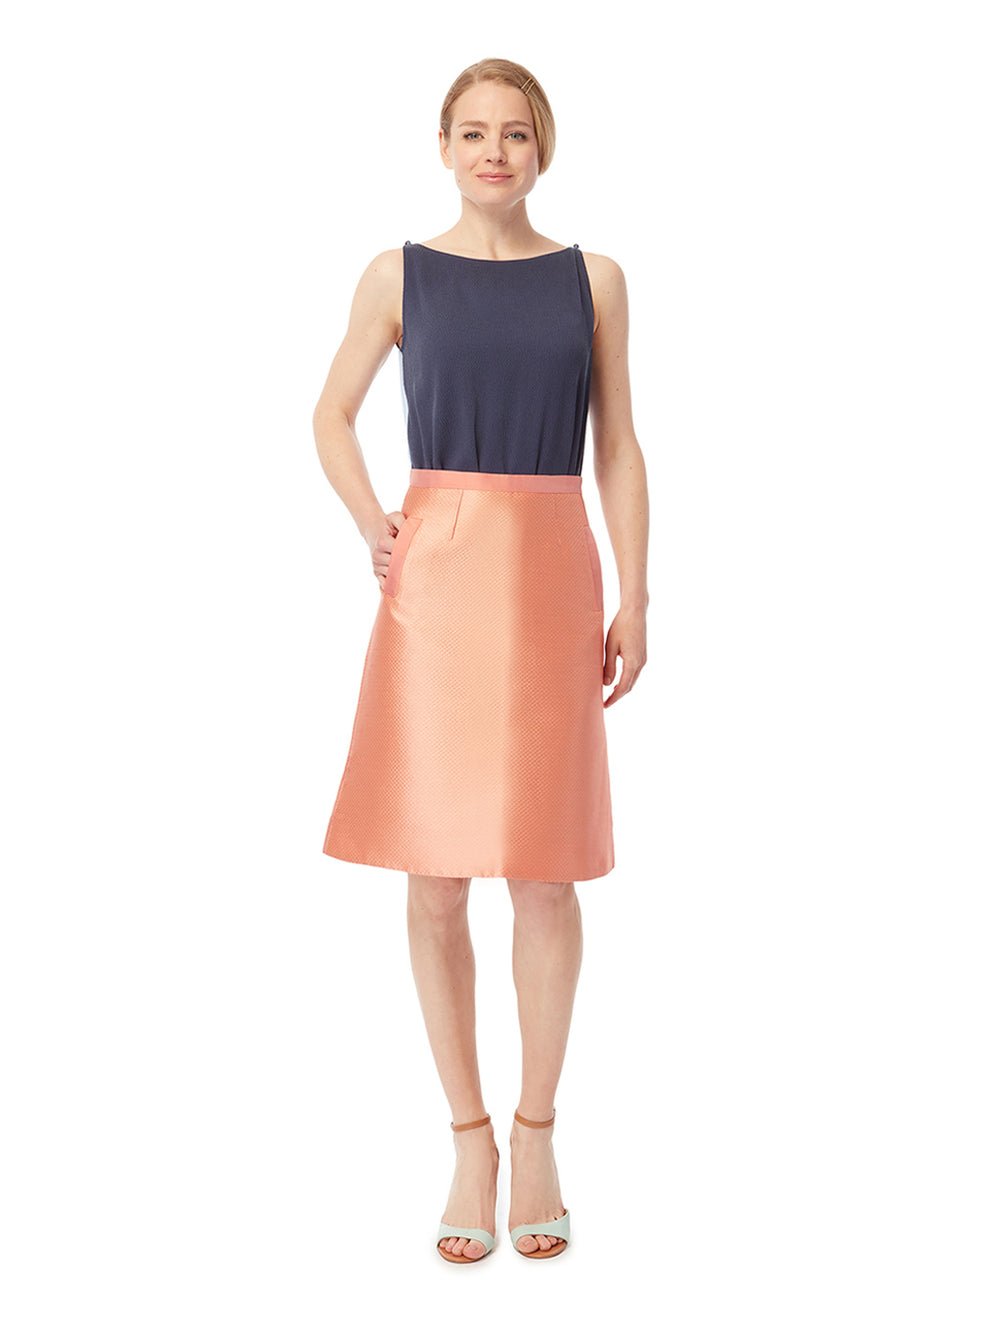 S037 _ CALA _ High-Waist A-Line Skirt